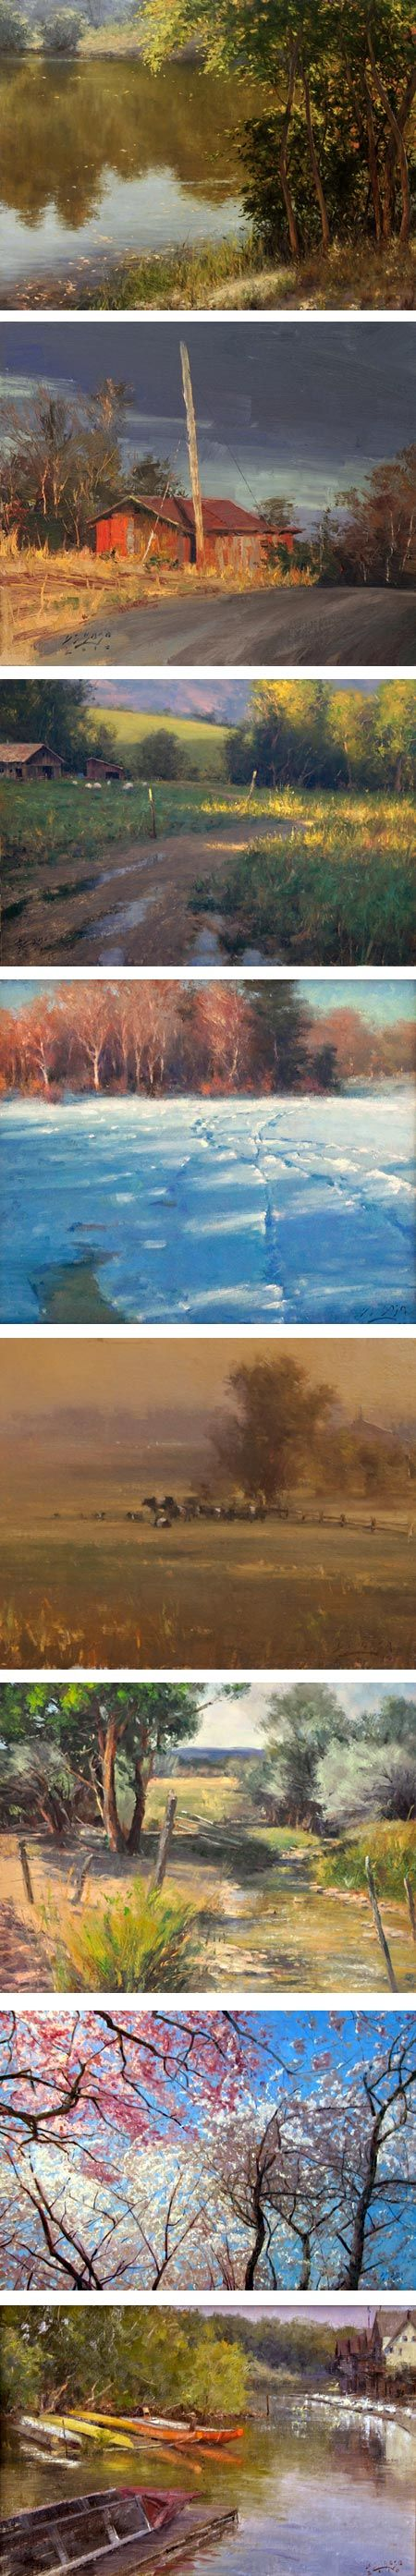 D Eleinne Basa is a painter from New Jersey whose landscapes and florals can range from refined, as in her large studio paintings, to nicely rough edged and painterly, as in her plein air paintings.